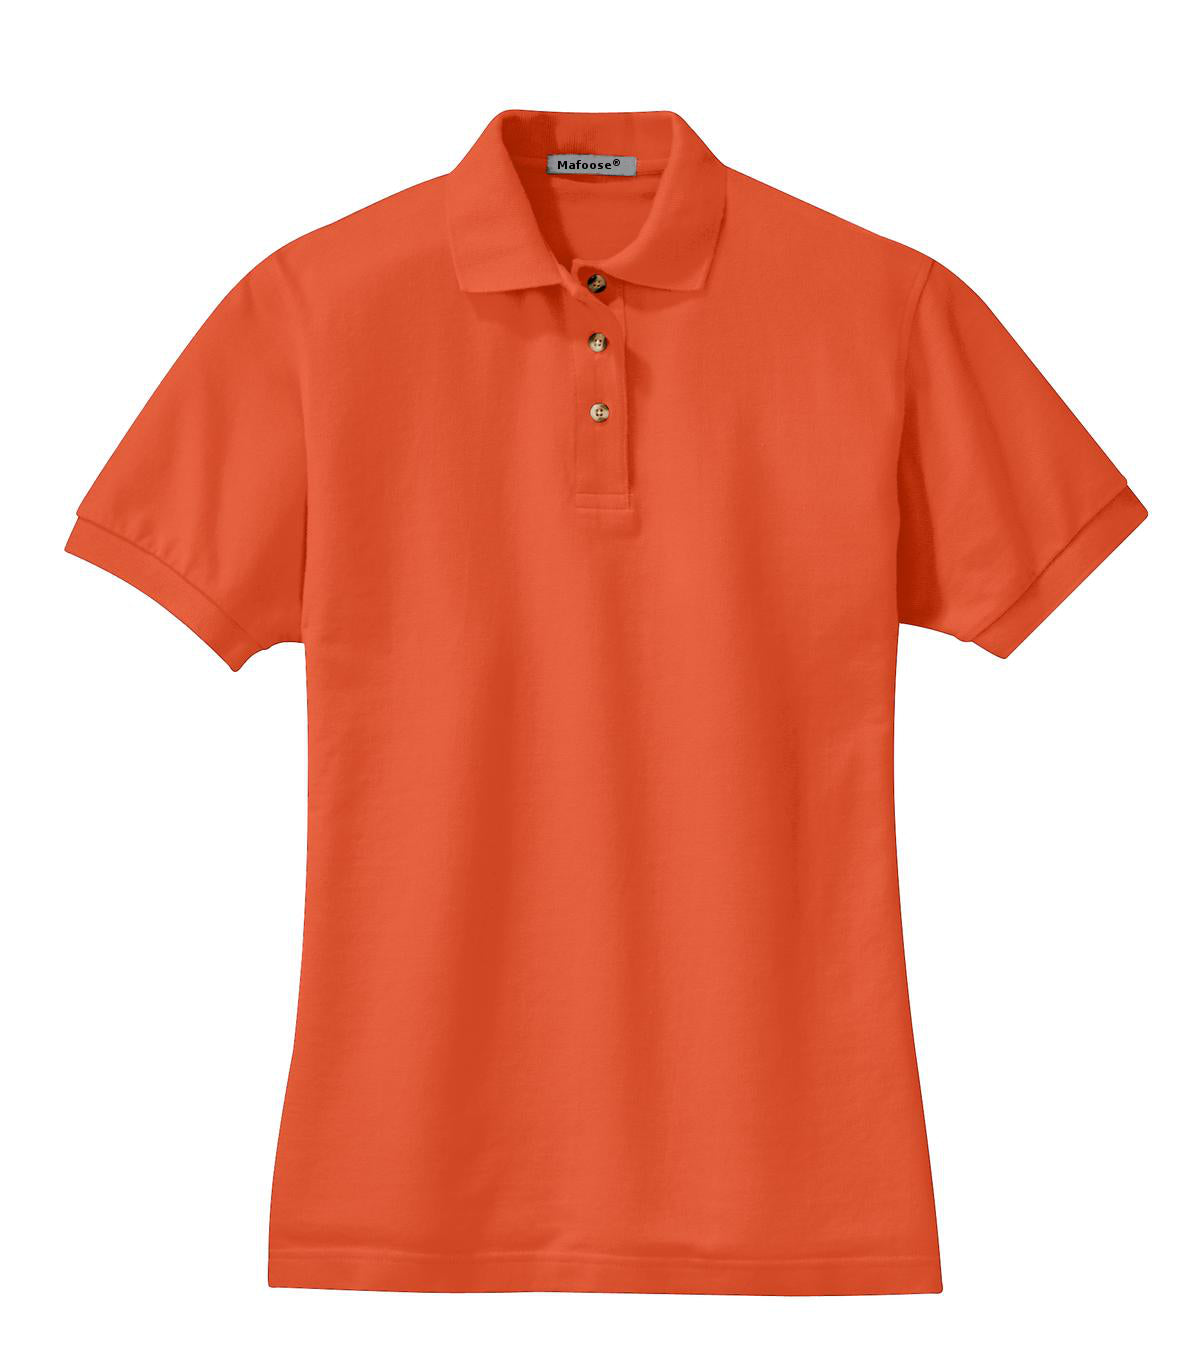 Mafoose Women's Heavyweight Cotton Pique Polo Shirt Orange-Front